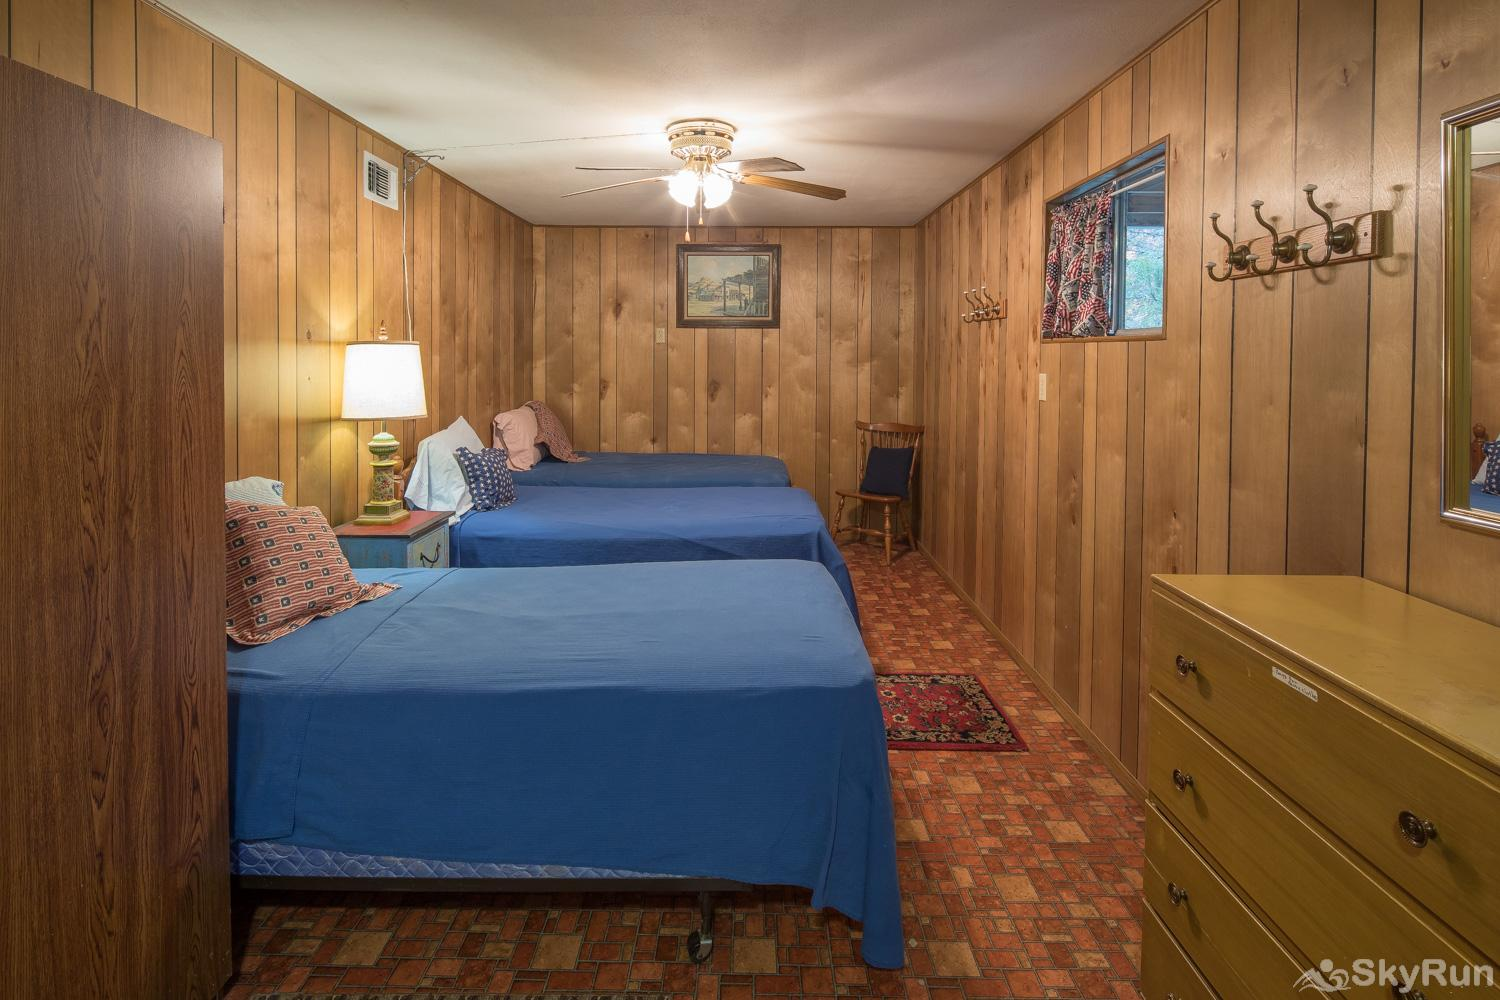 MAC'S PLACE Third Bedroom with 4 Twin Beds, Small Living Area and a Full Bathroom with a Walk-In Shower